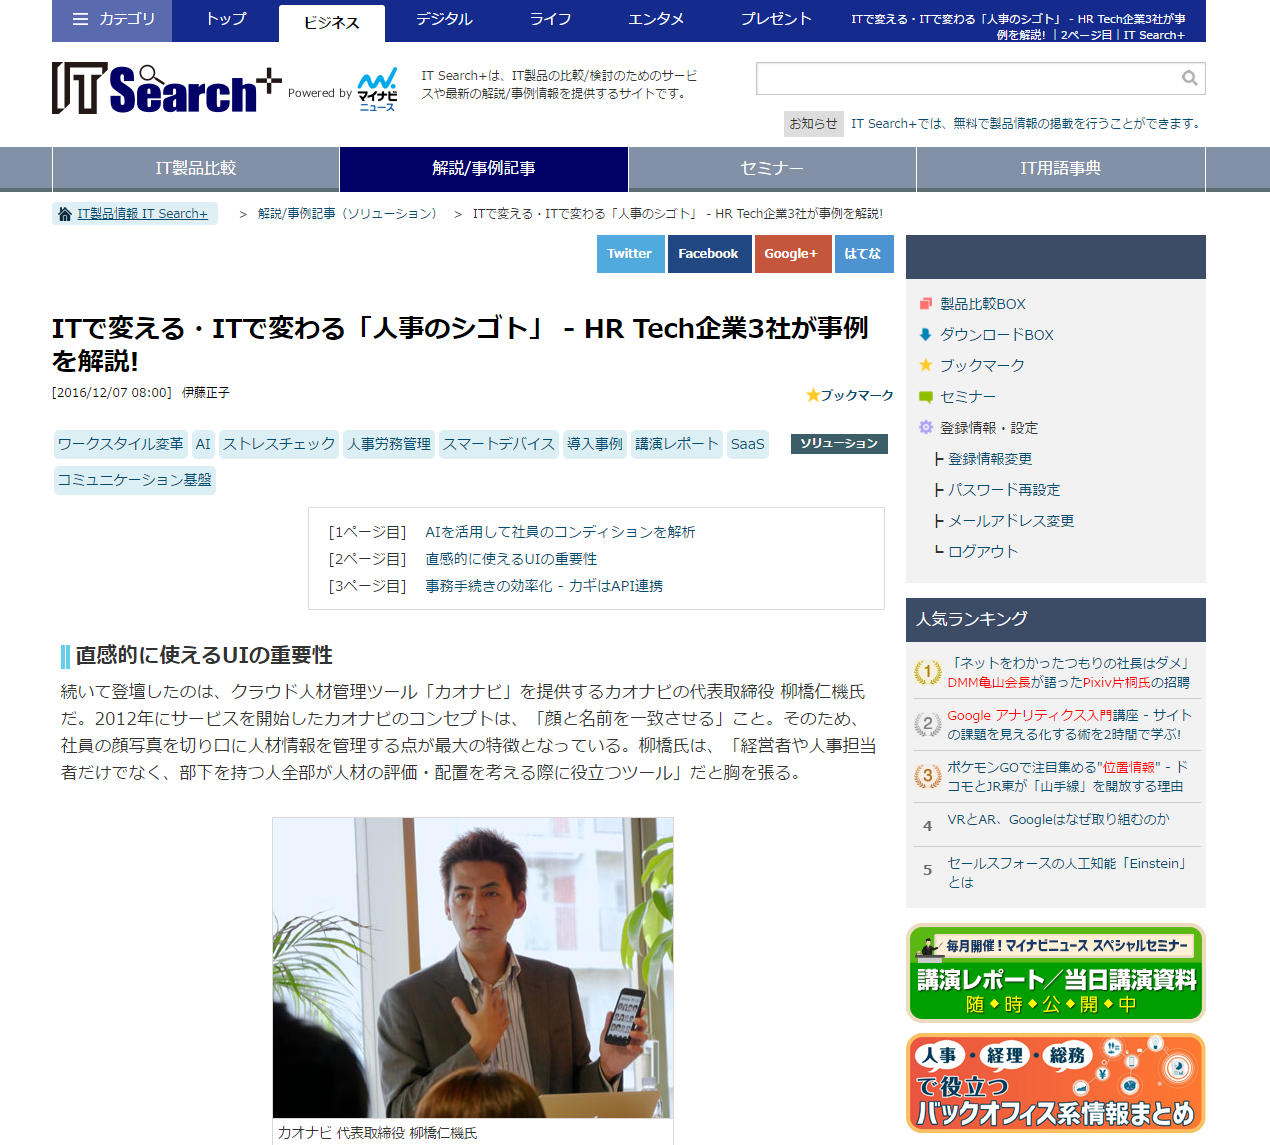 ITSearch+